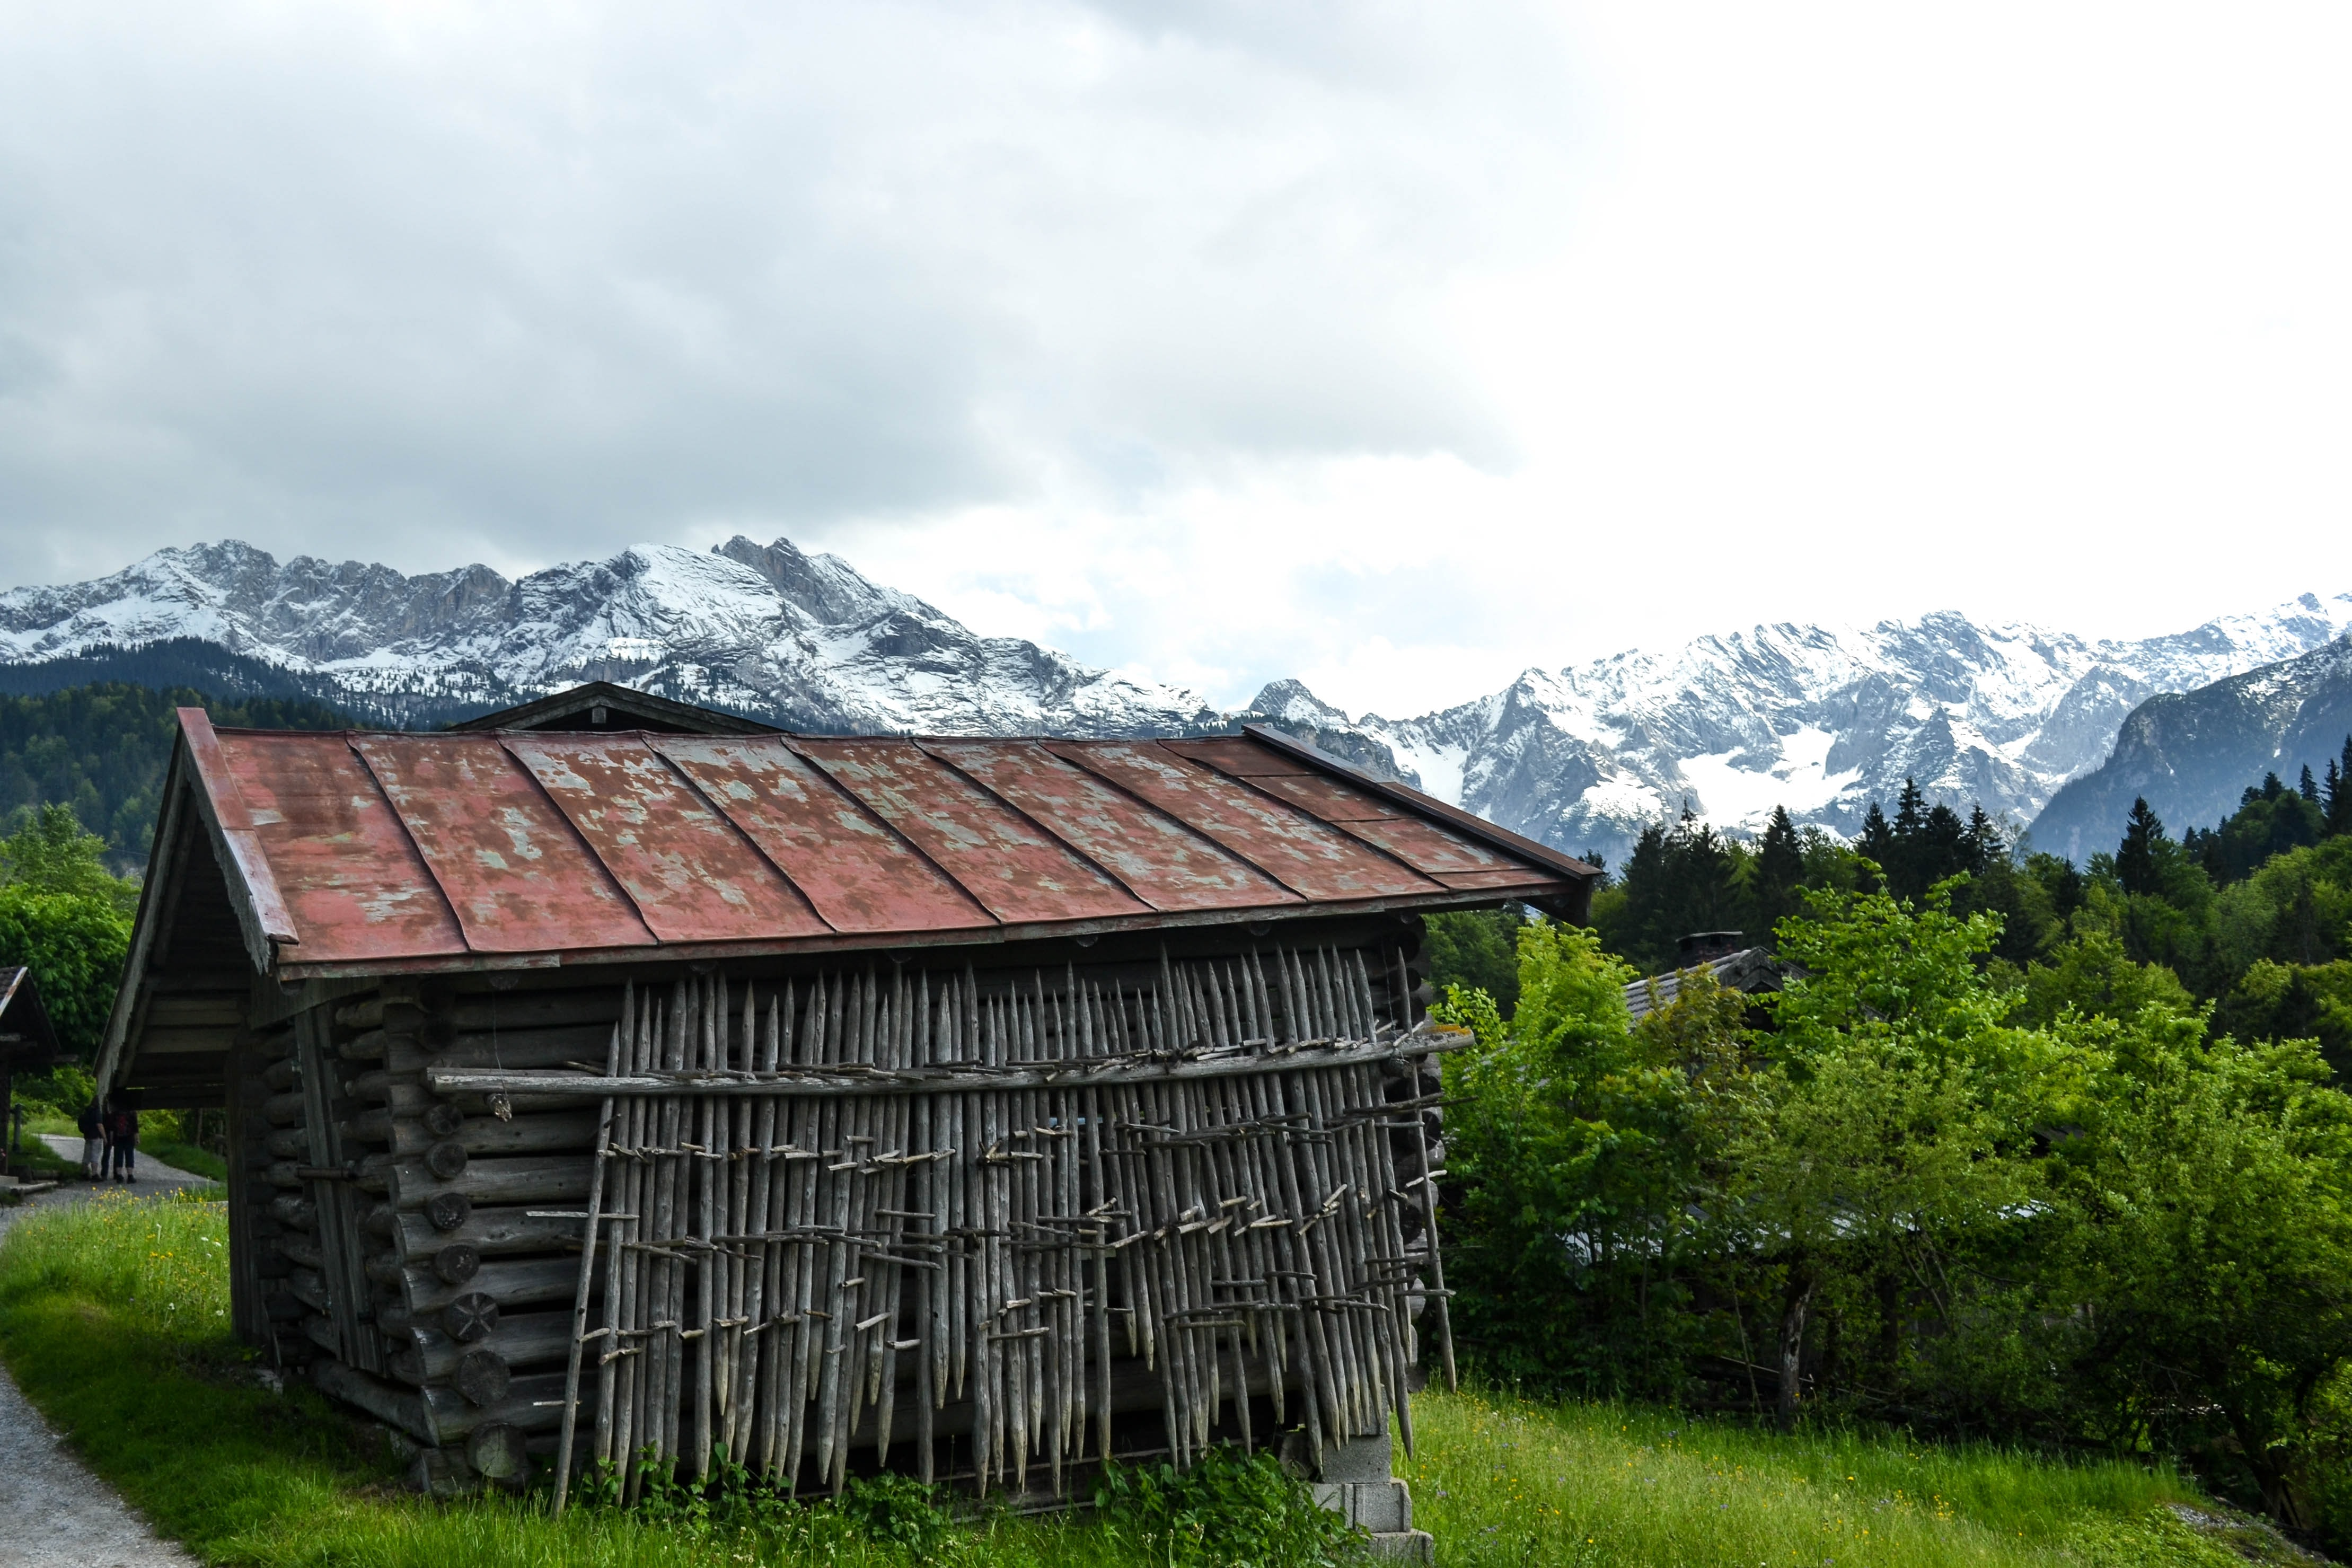 Old wooden shed with a tin roof on a grassy hill next to a road with trees and snow capped mountains in the background